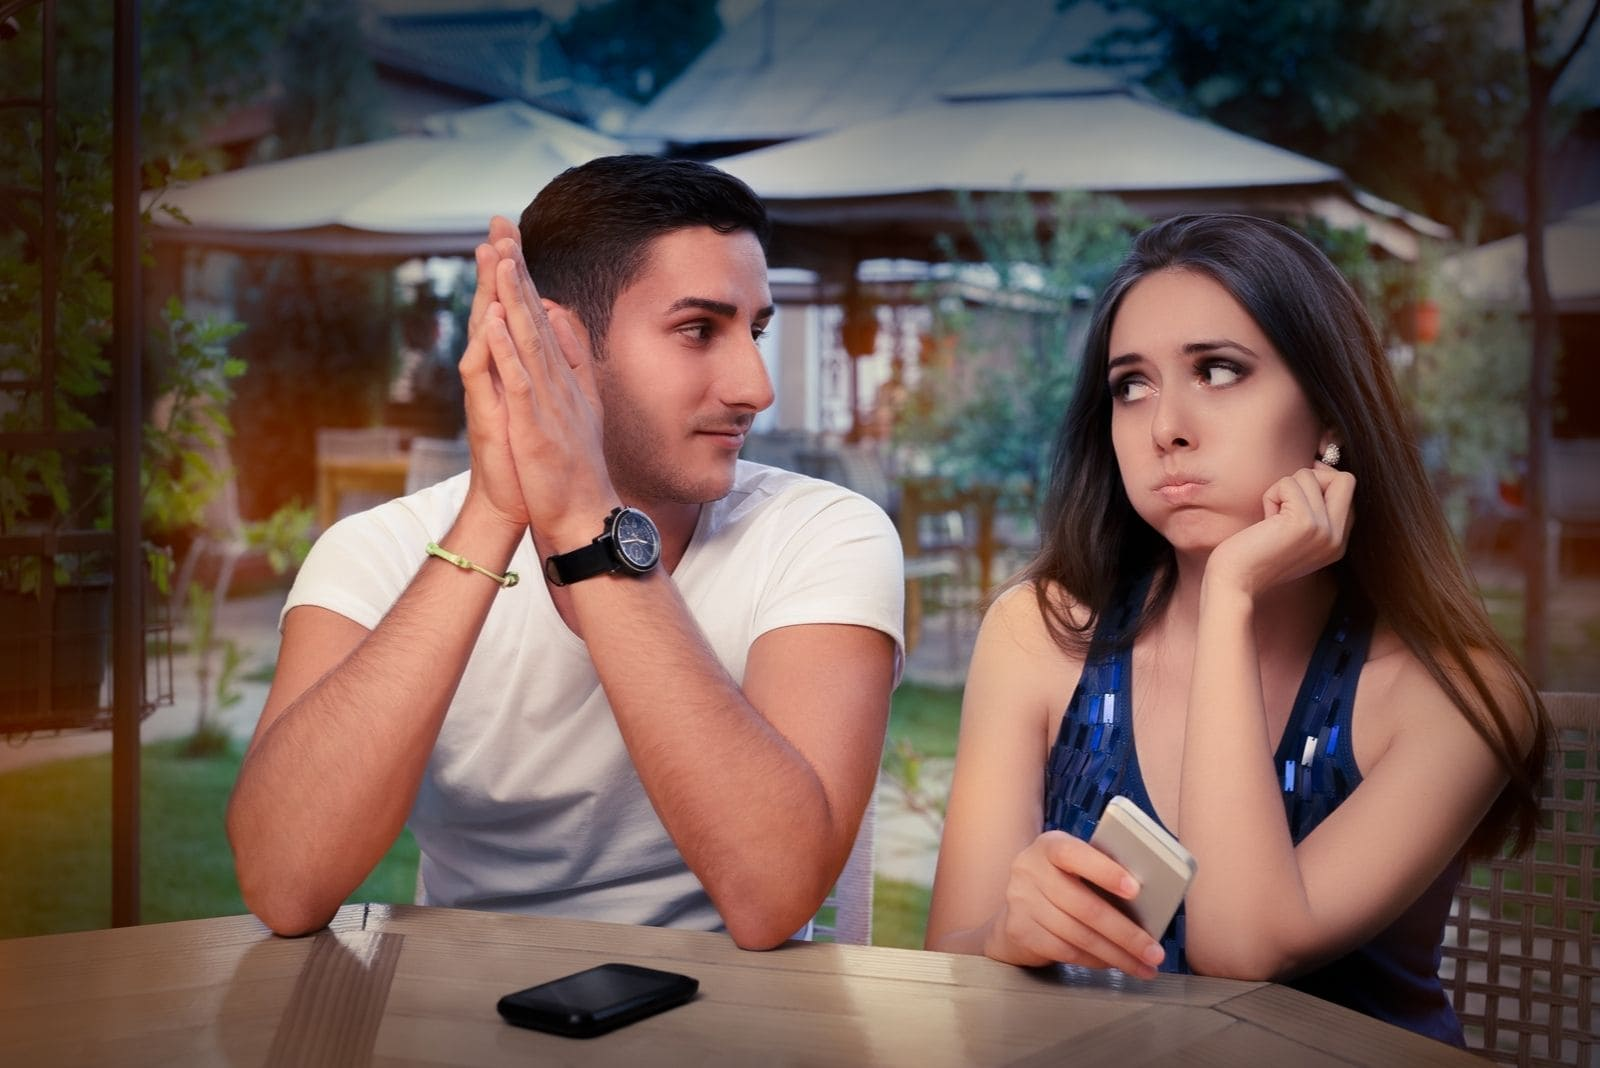 couple having problem with smartphone in an outdoor cafe with woman in disbelief expression